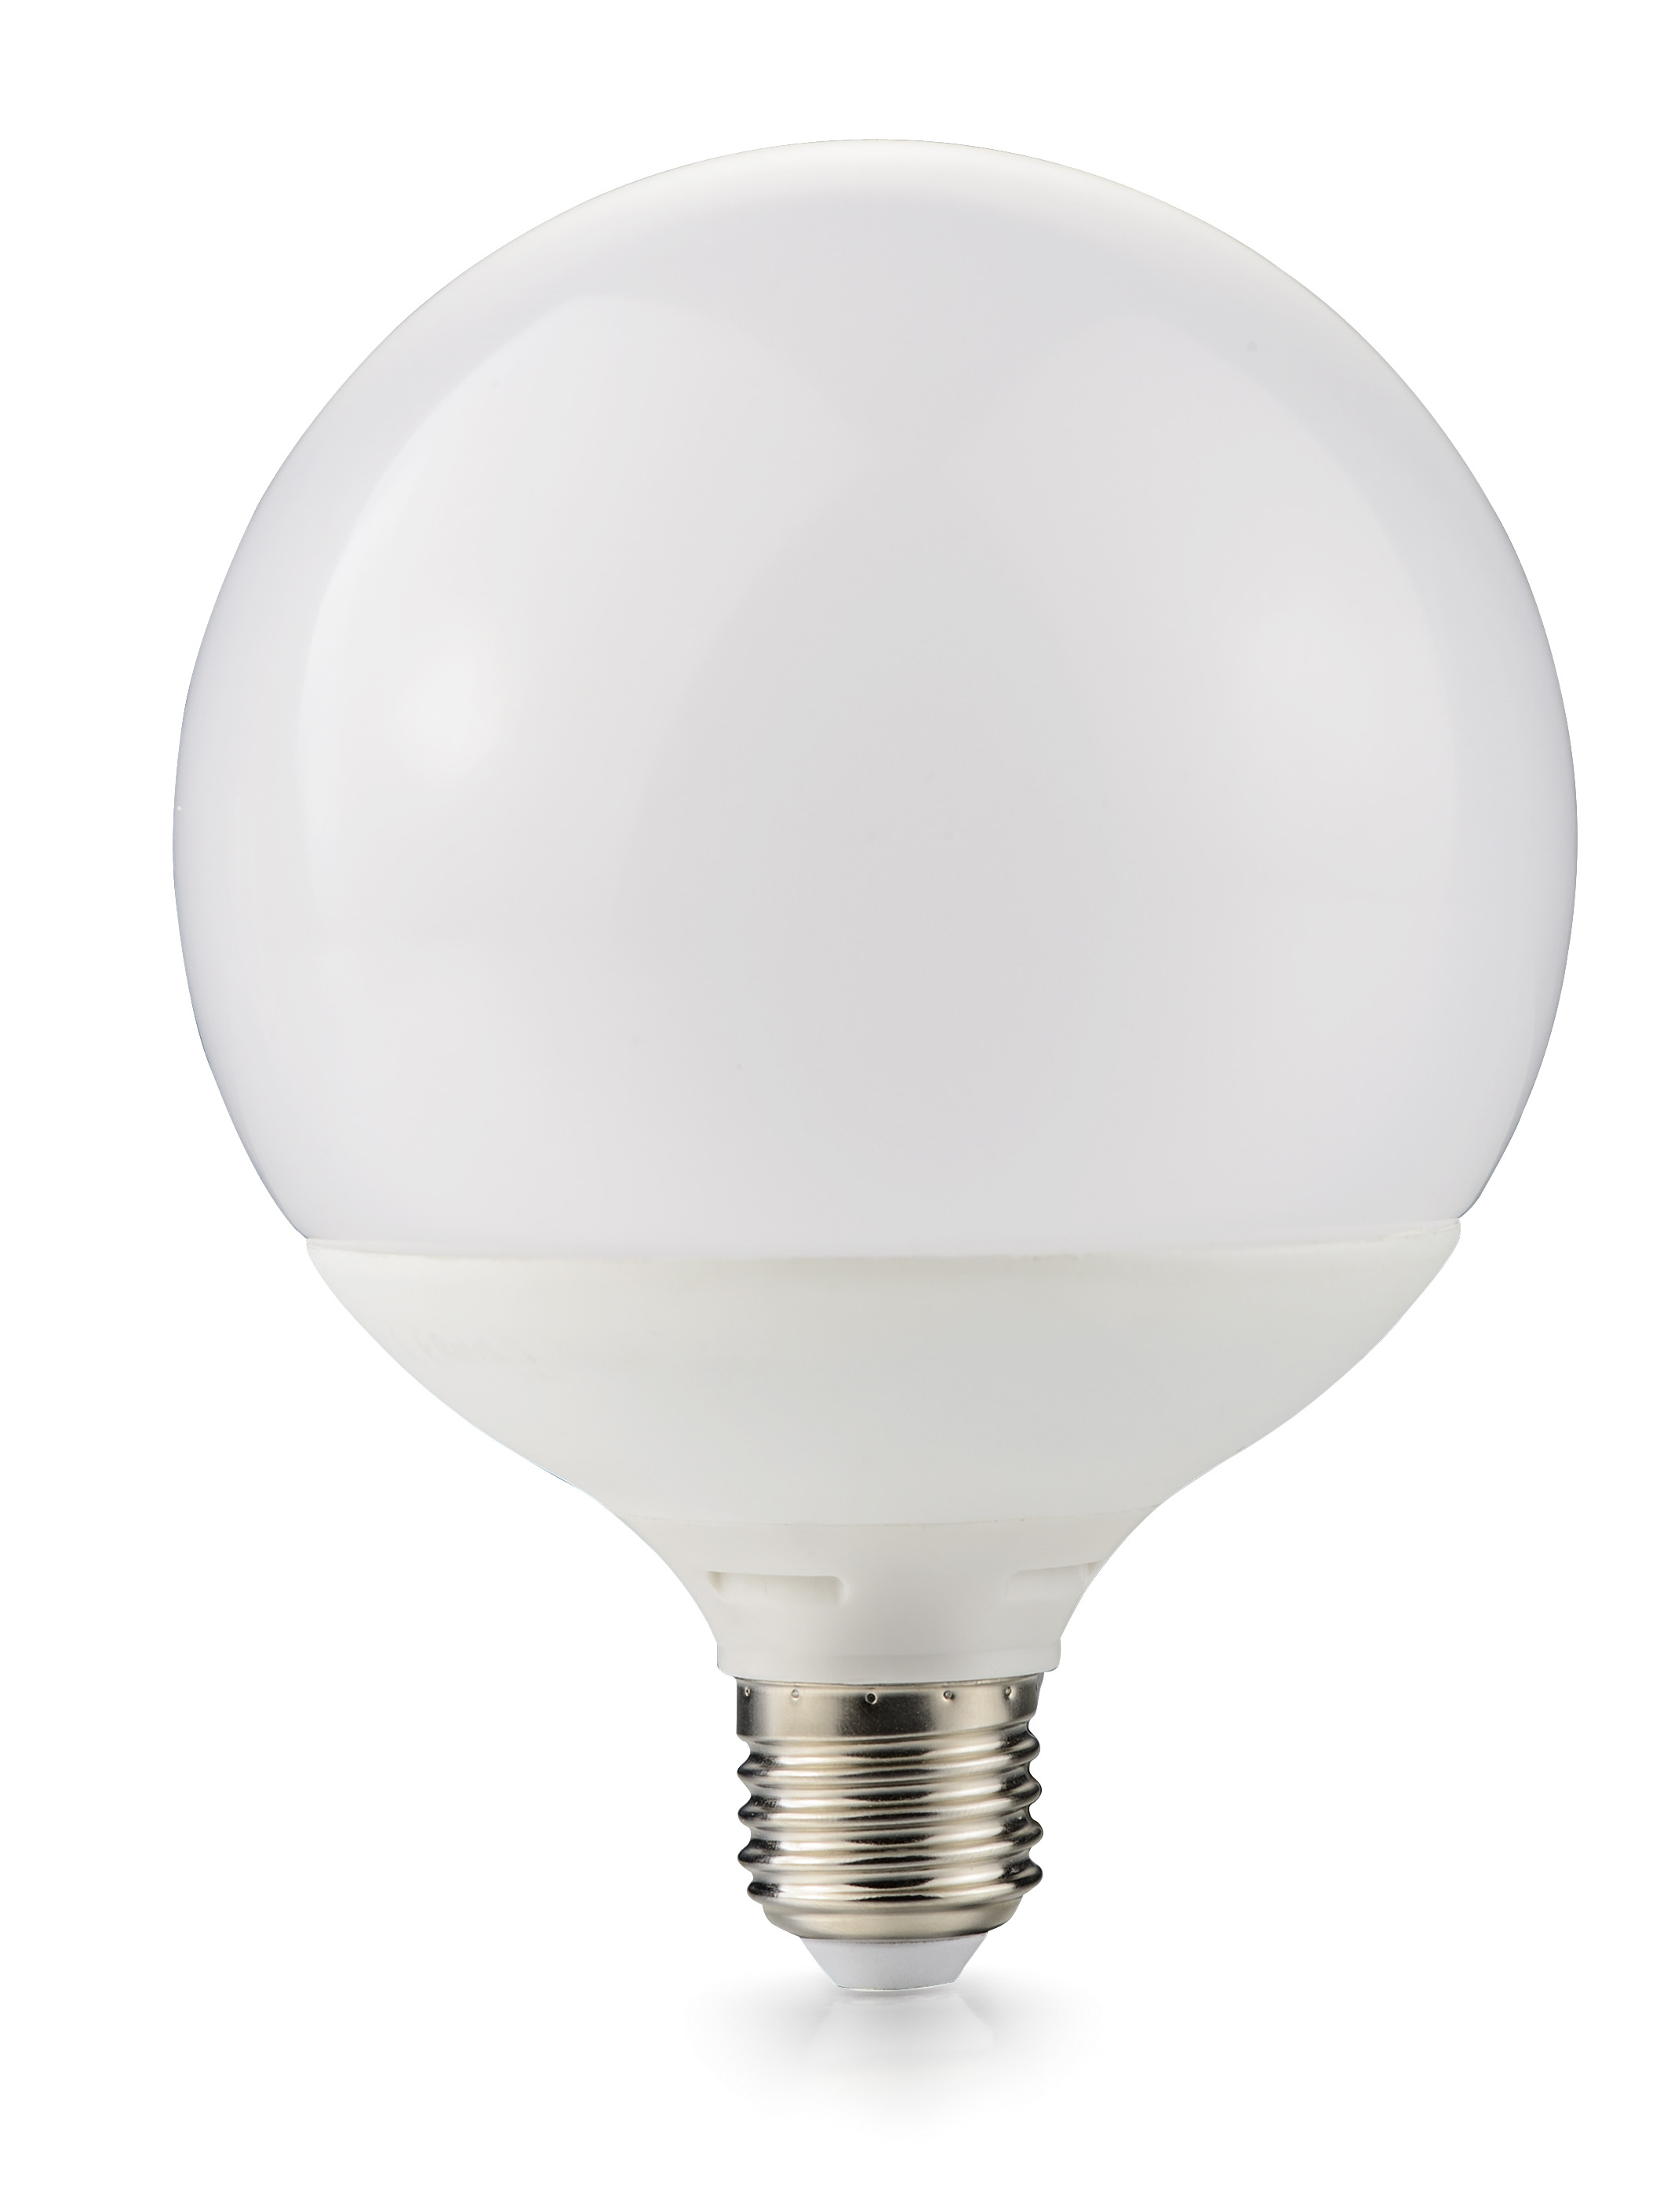 High bright G95 15W Aluminum and plastic E27 global led bulb